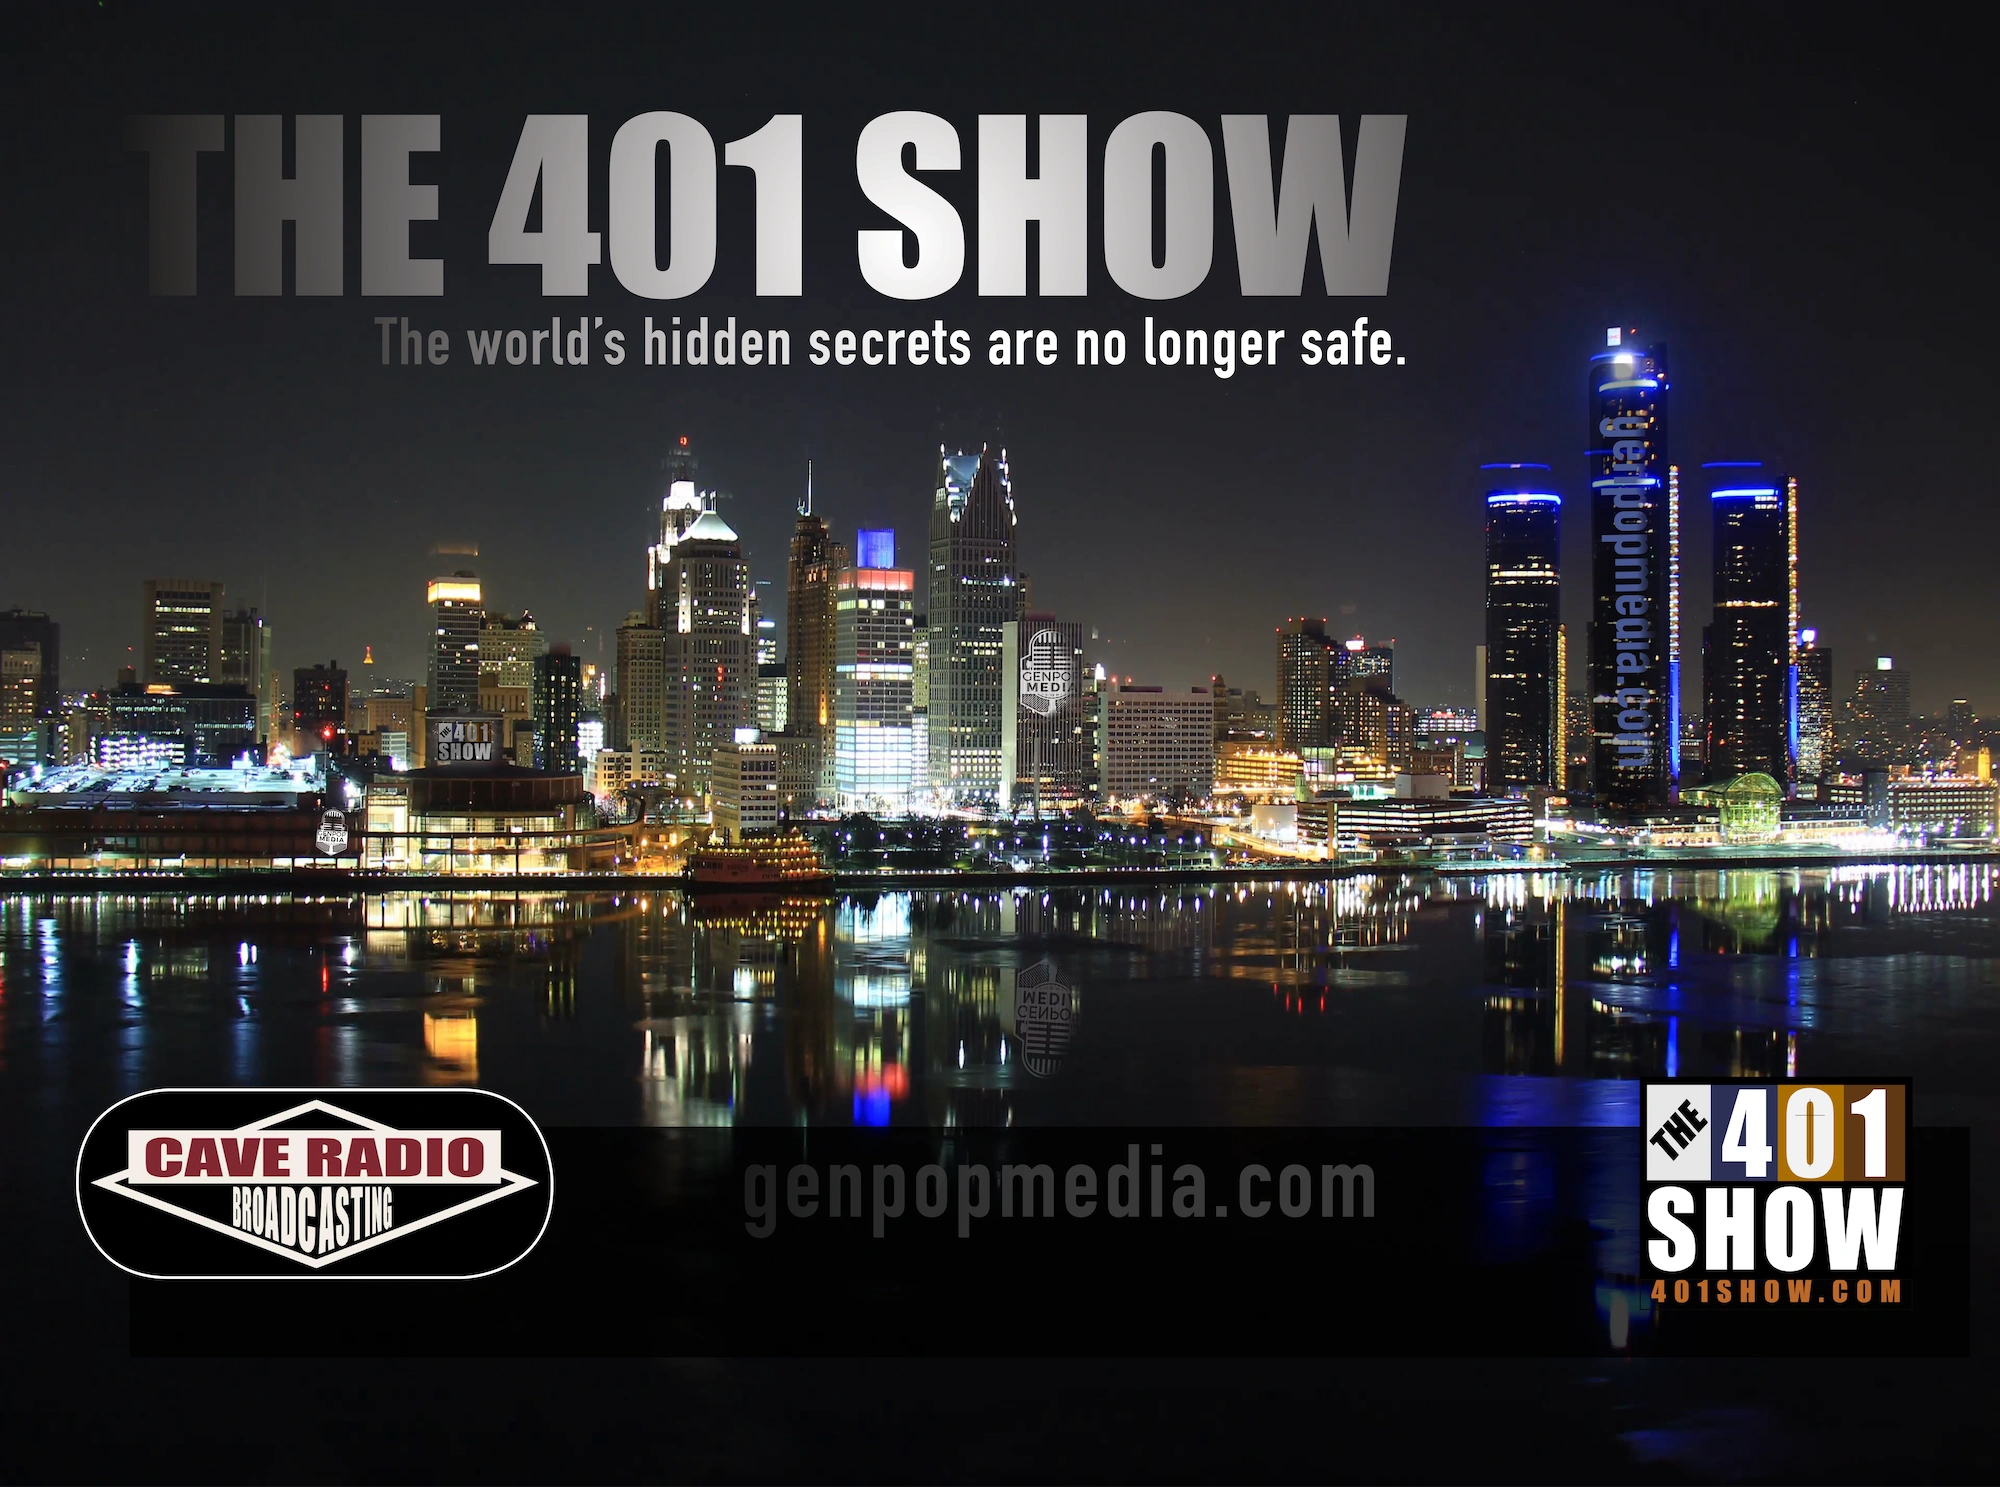 The 401 show broadcasts from Detroit to the world, with listeners in more than a dozen countries.